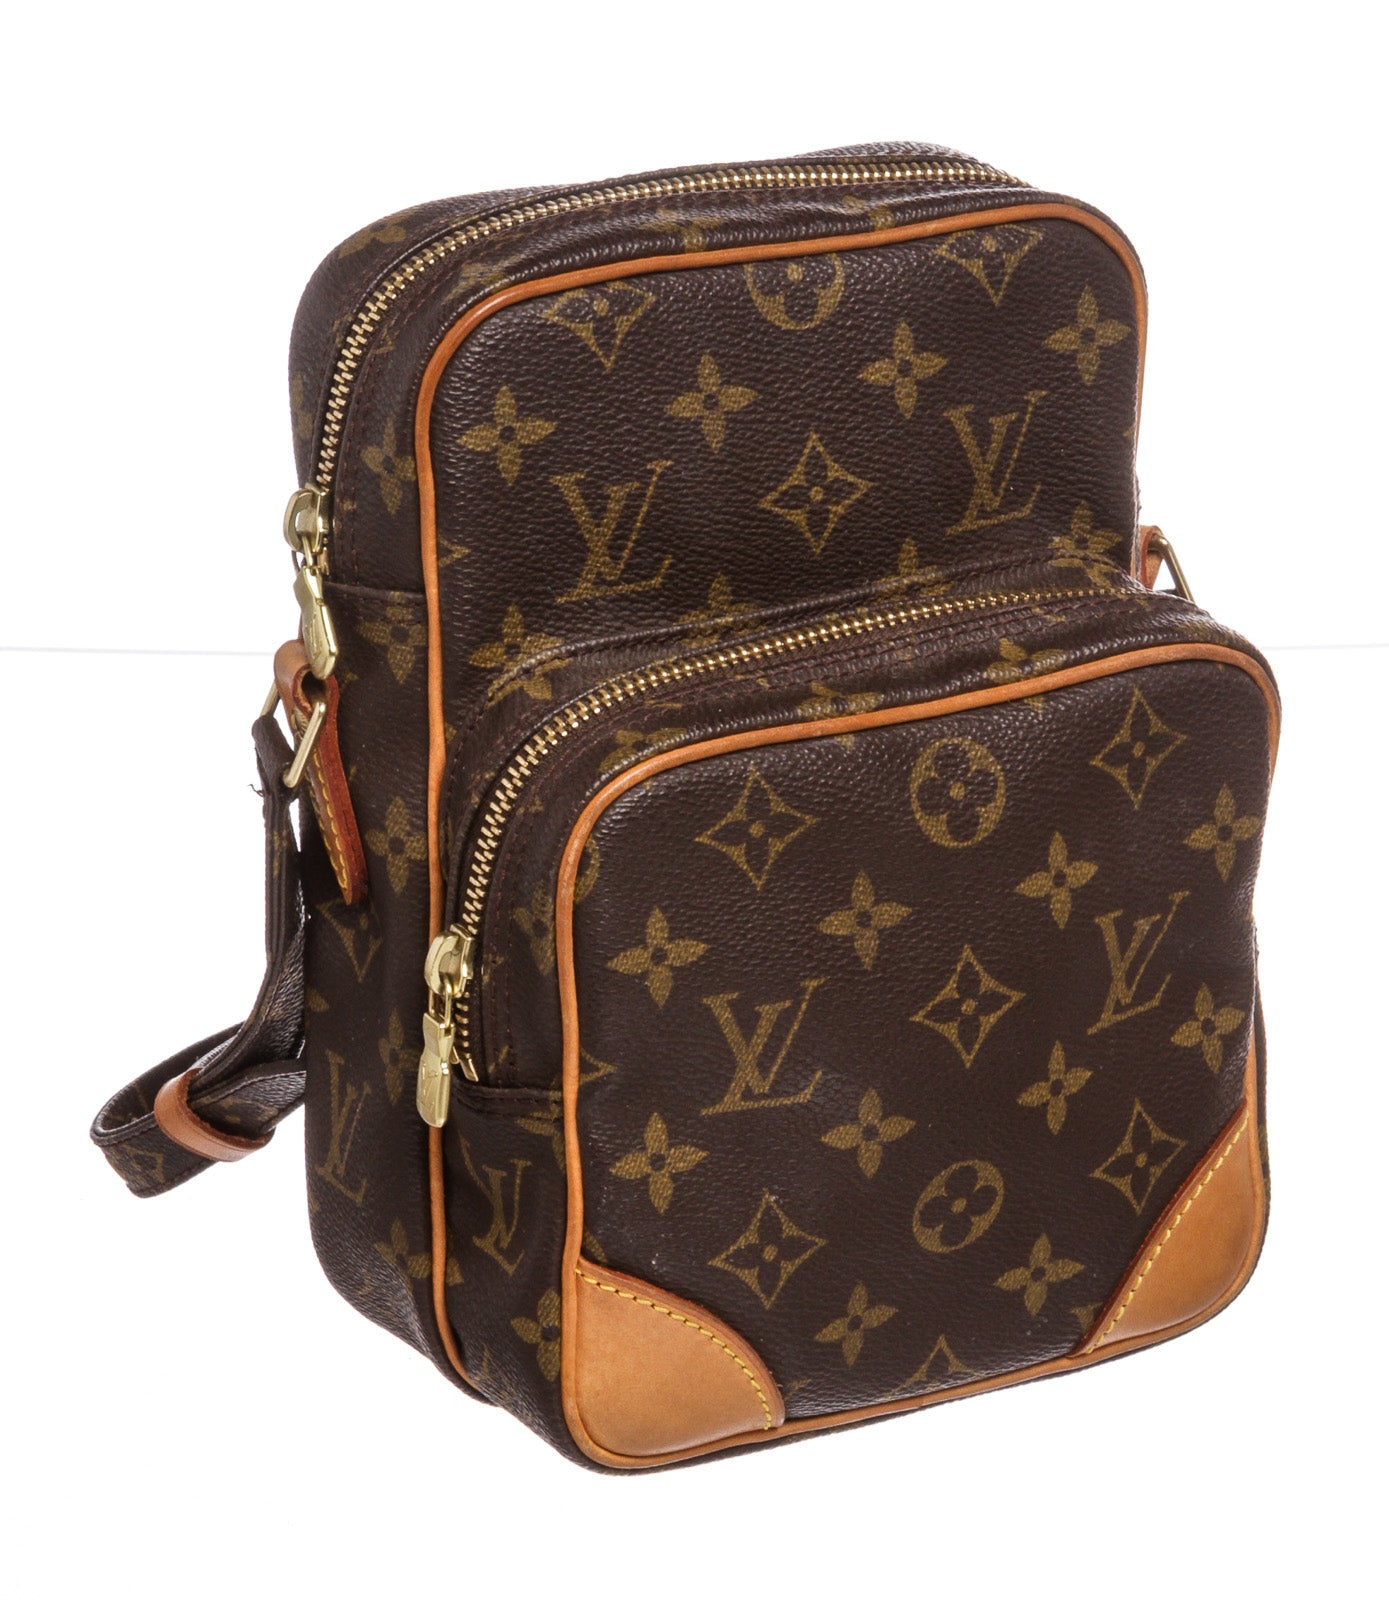 Louis Vuitton Monogram Canvas Amazone Crossbody Bag